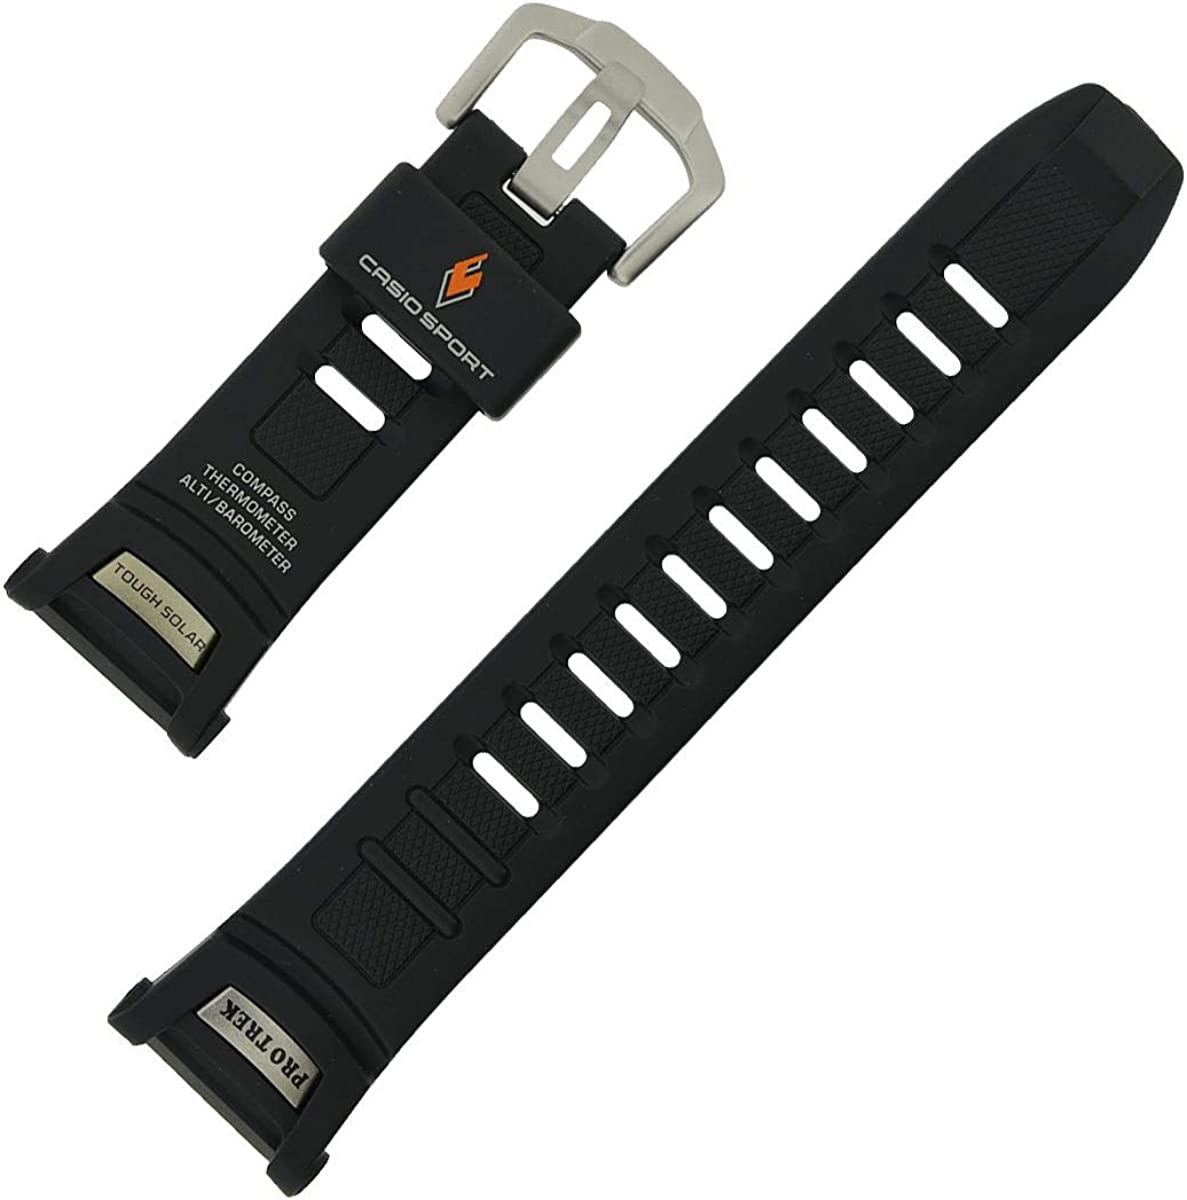 Casio PRW-1500 black resin replacement watch band